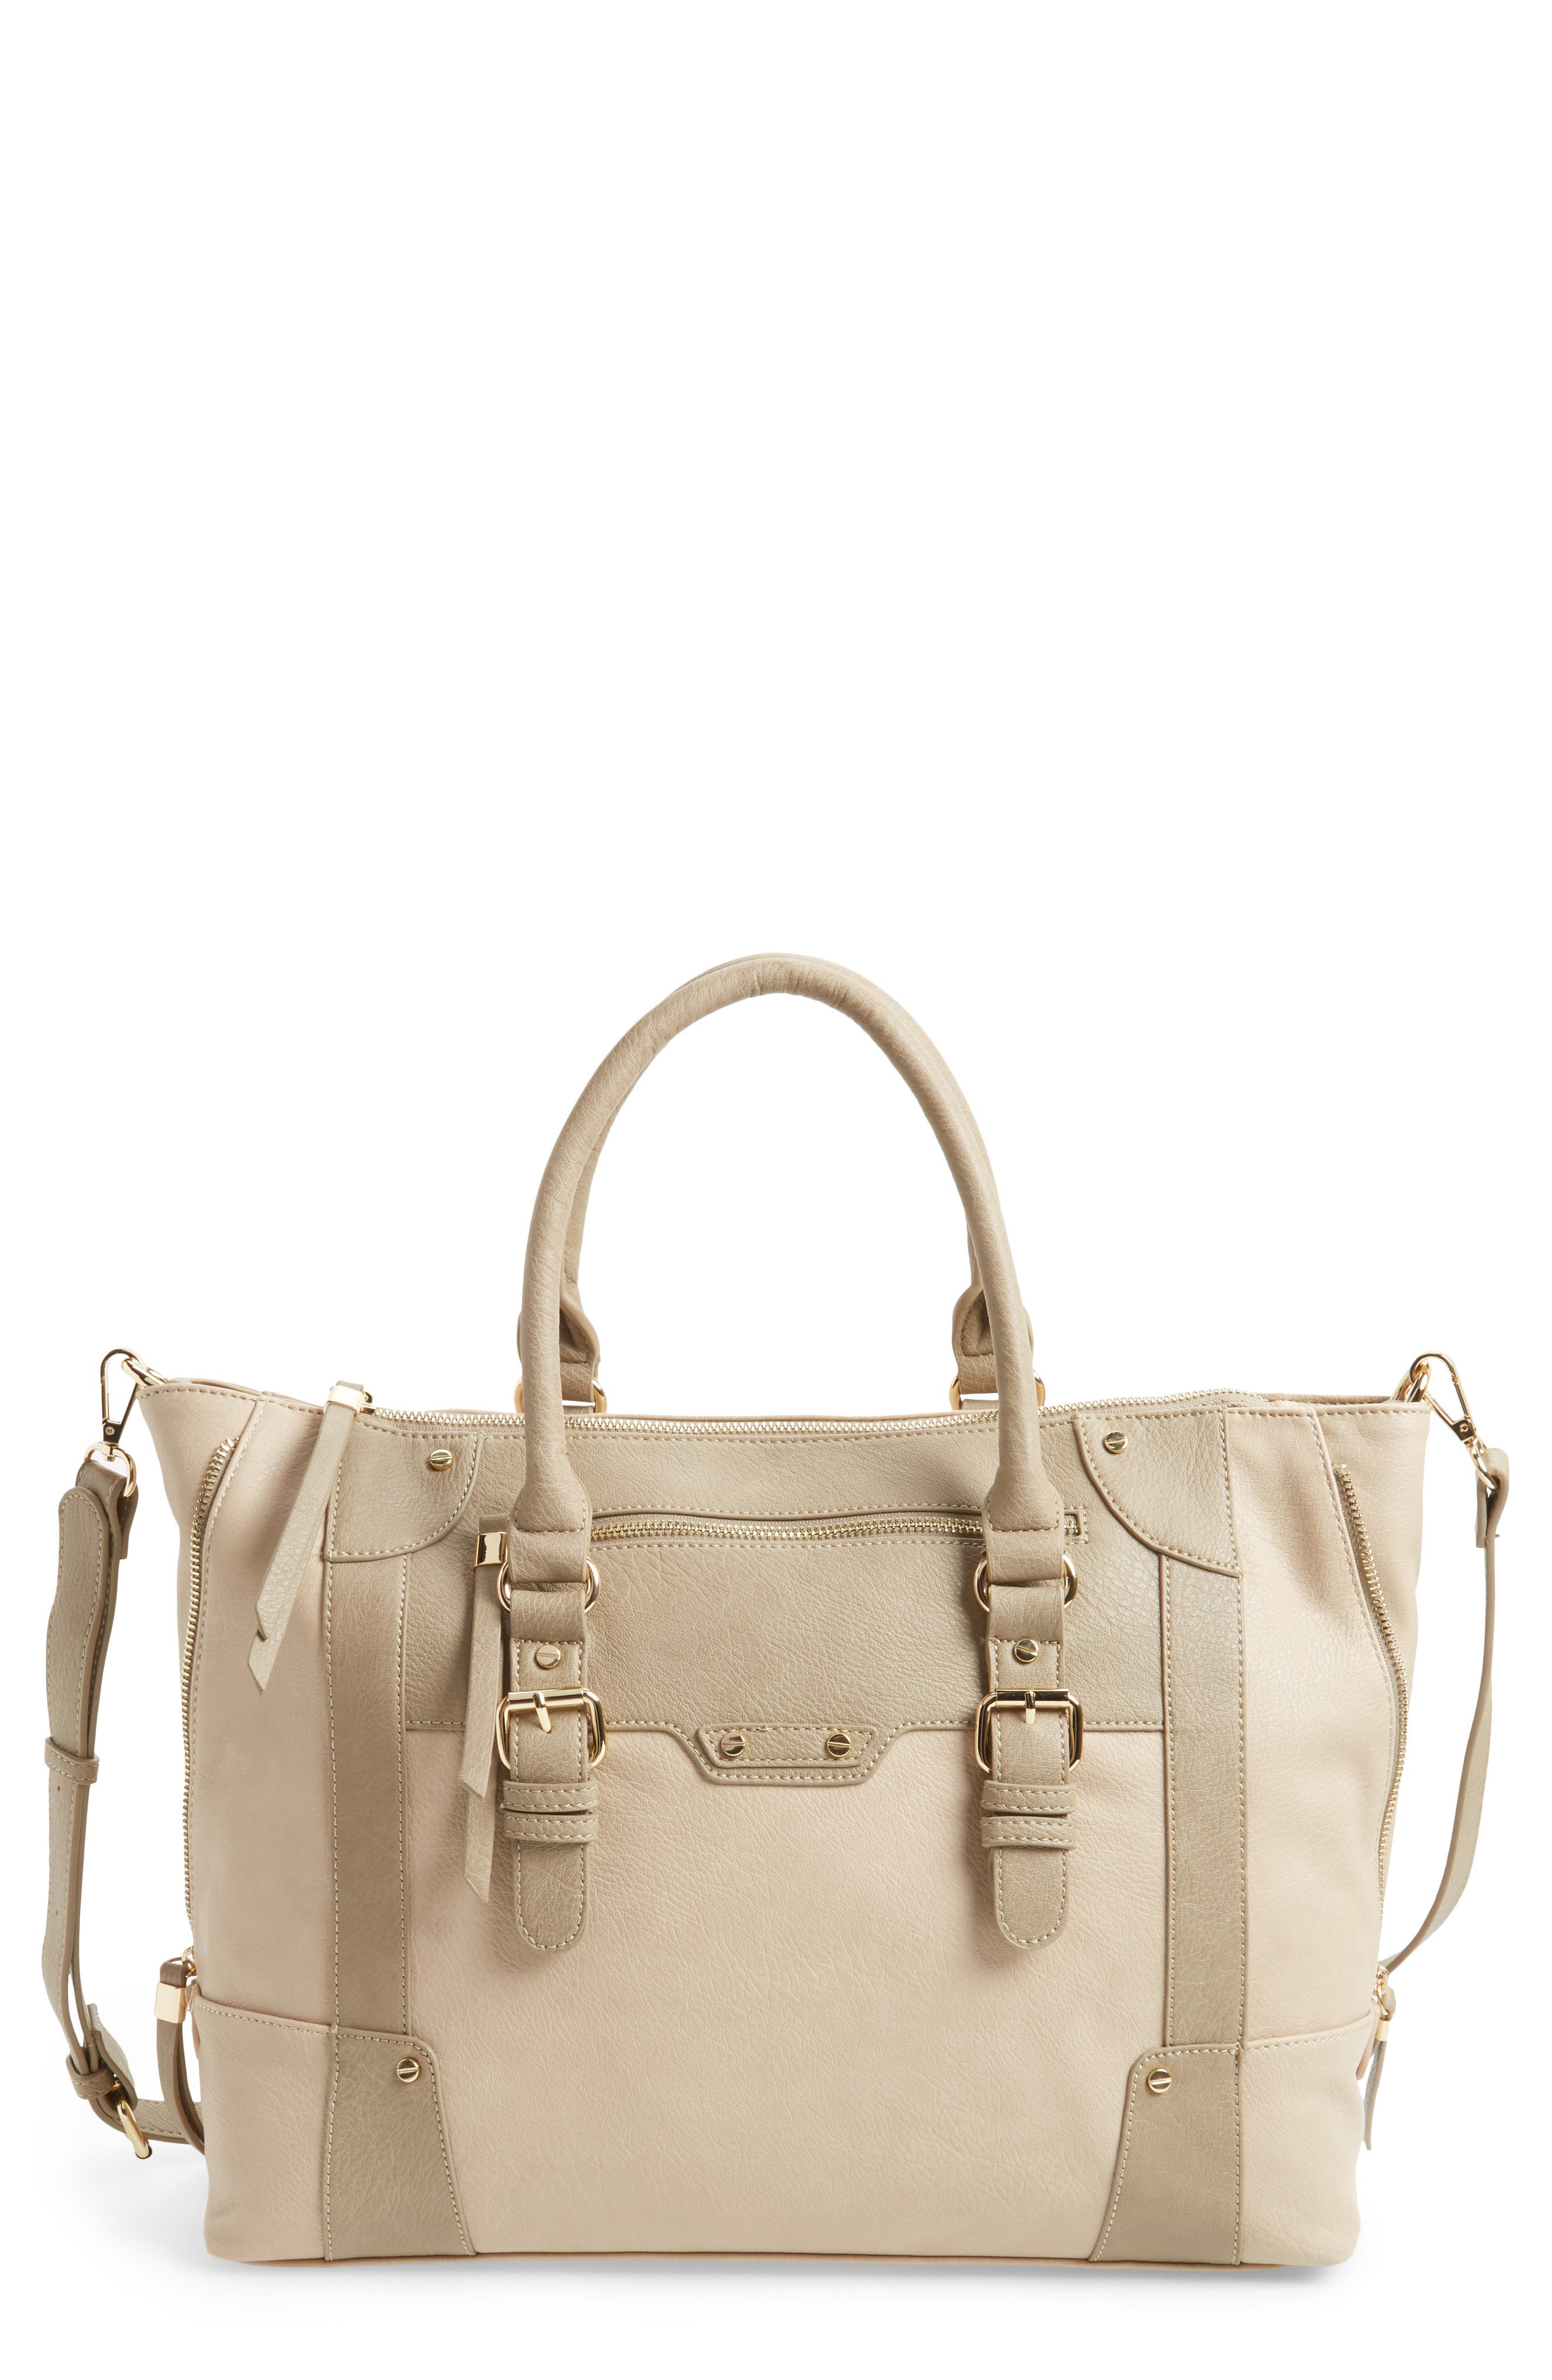 Alternate Image 1 Selected - Sole Society 'Susan' Winged Faux Leather Tote